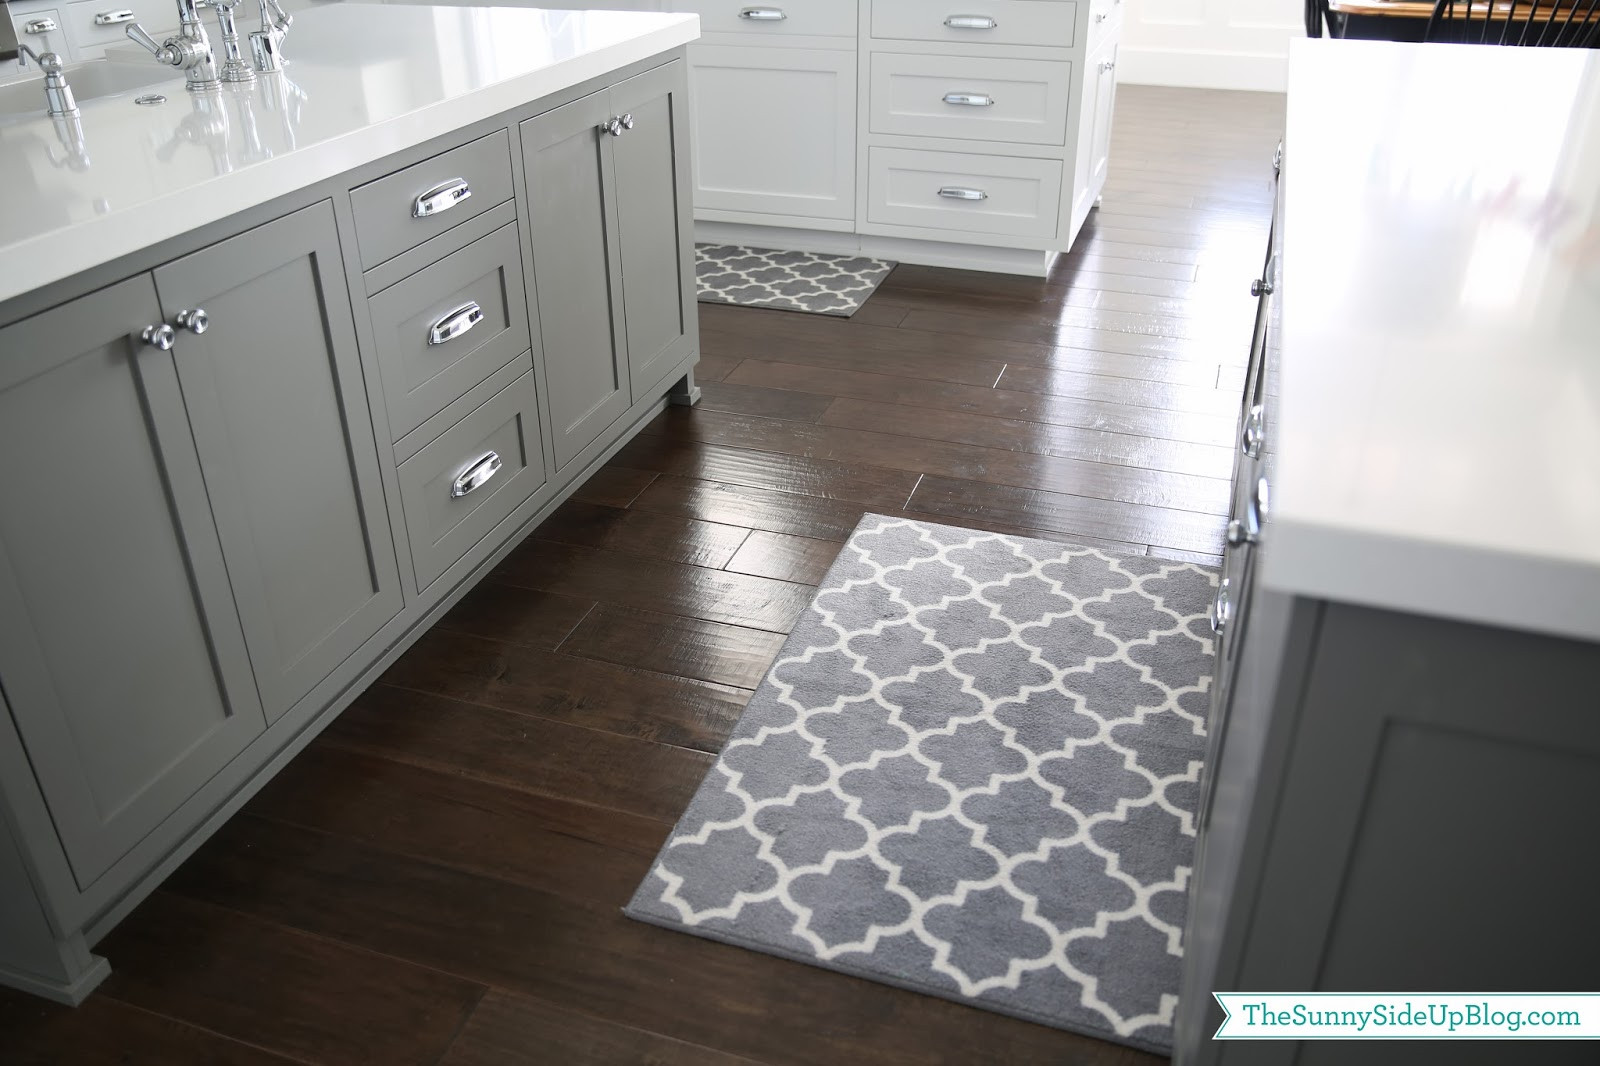 White Kitchen Rugs  Priorities and new kitchen rugs The Sunny Side Up Blog